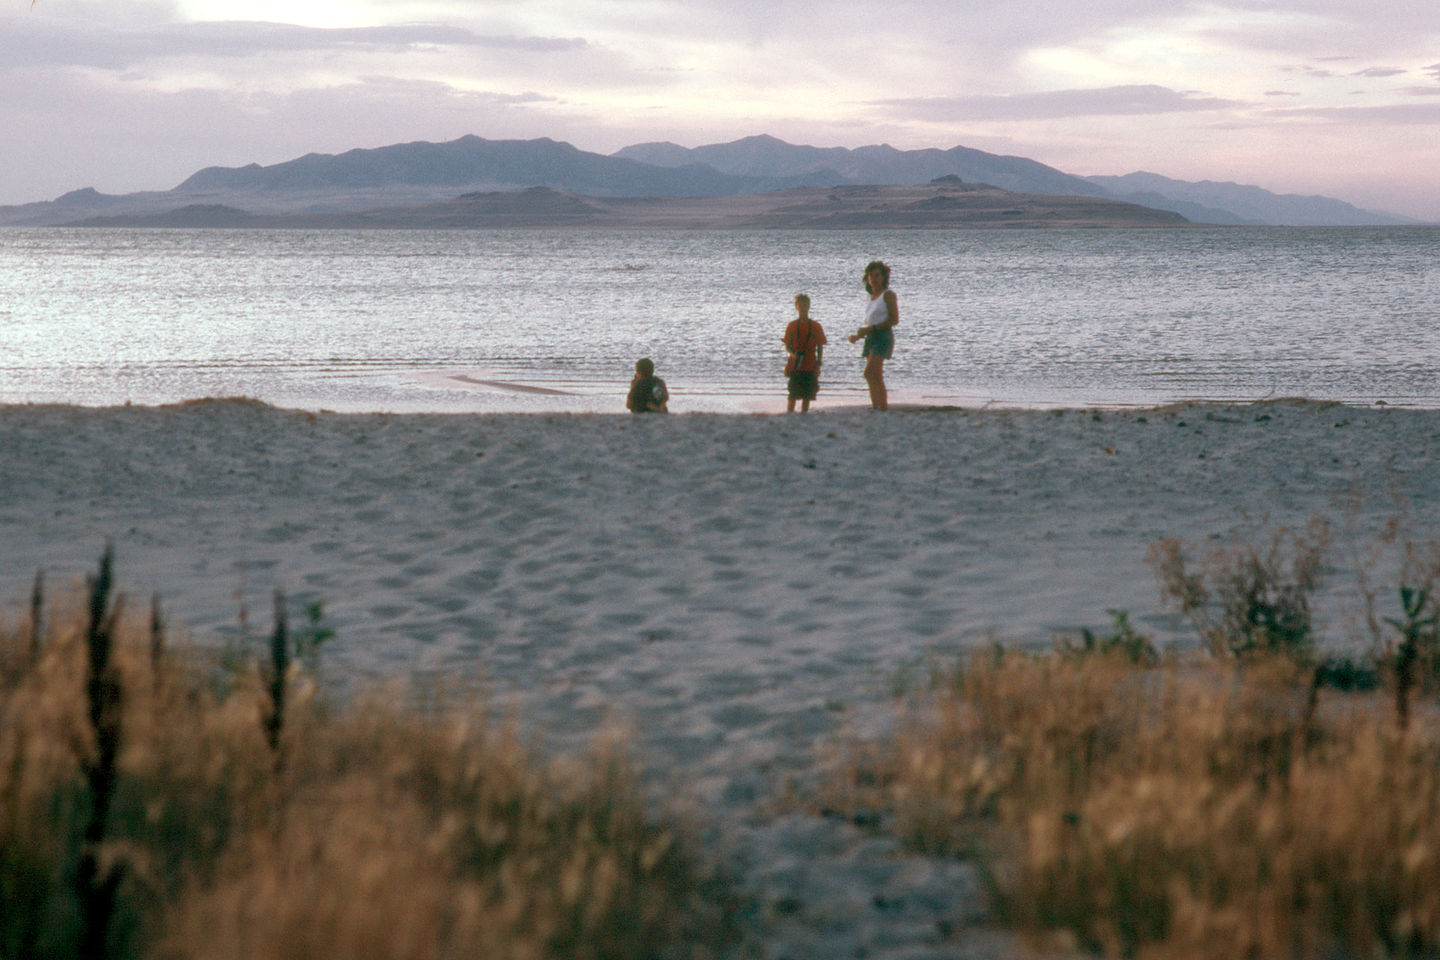 Lolo and boys on campground beach